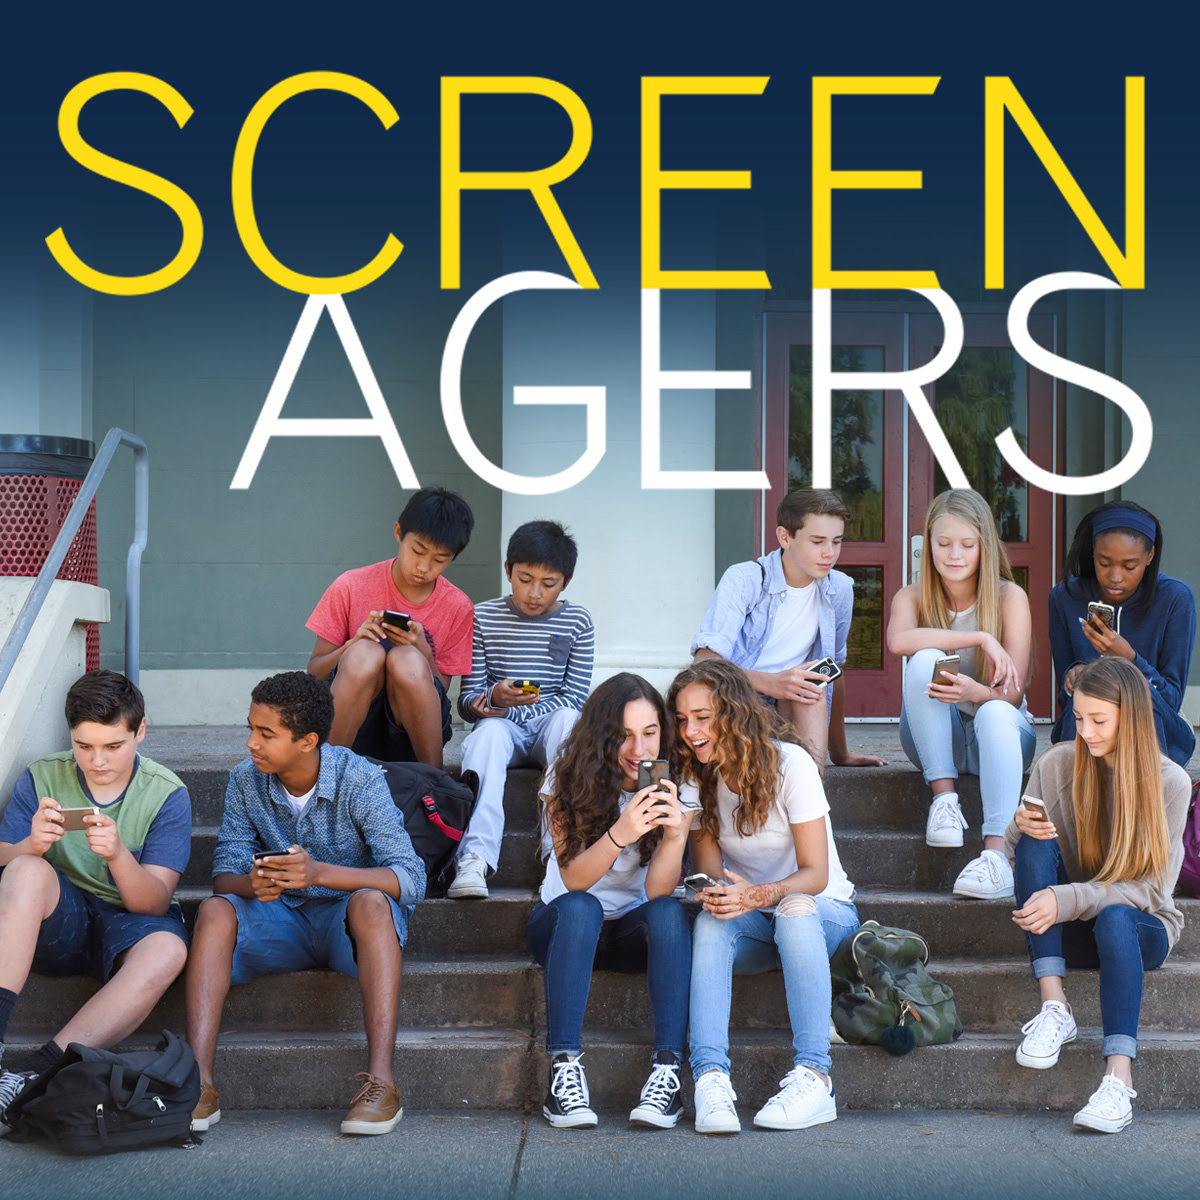 Screenagers Film Presented By BCRAC, Mansfield Univerity, Tioga County Human Services